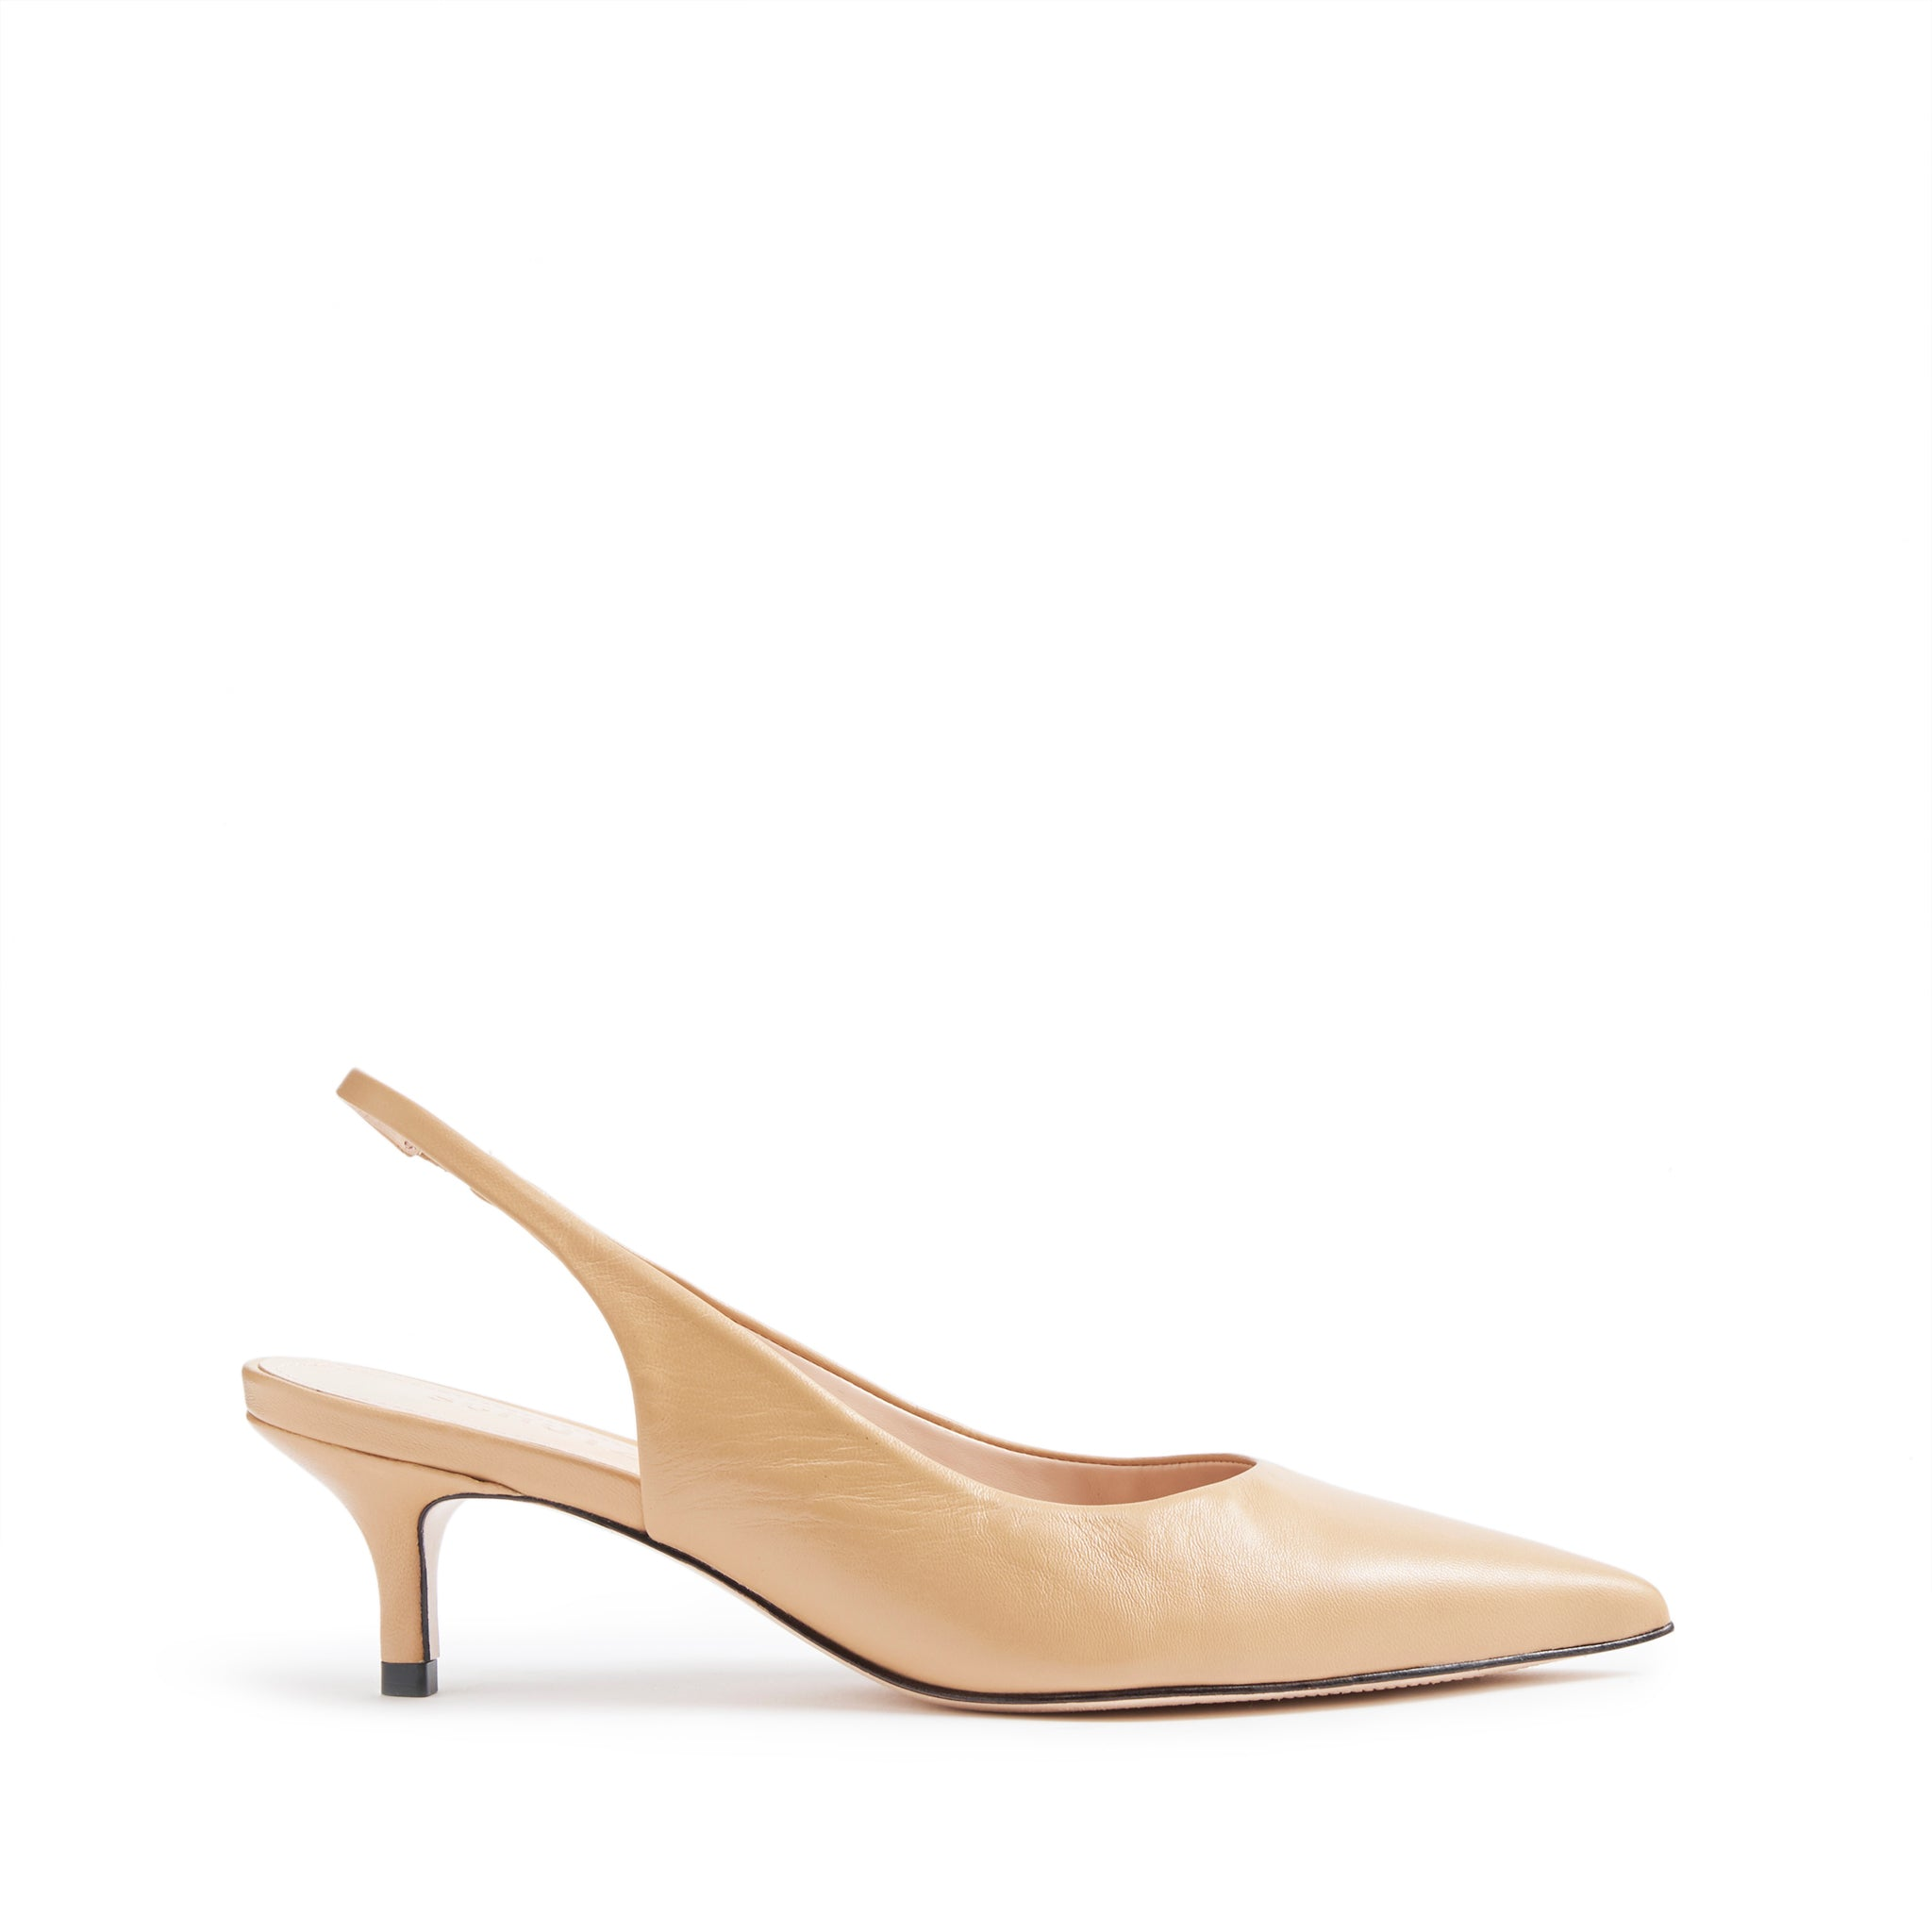 Cambrie Slingback Pumps Honey Beige Leather